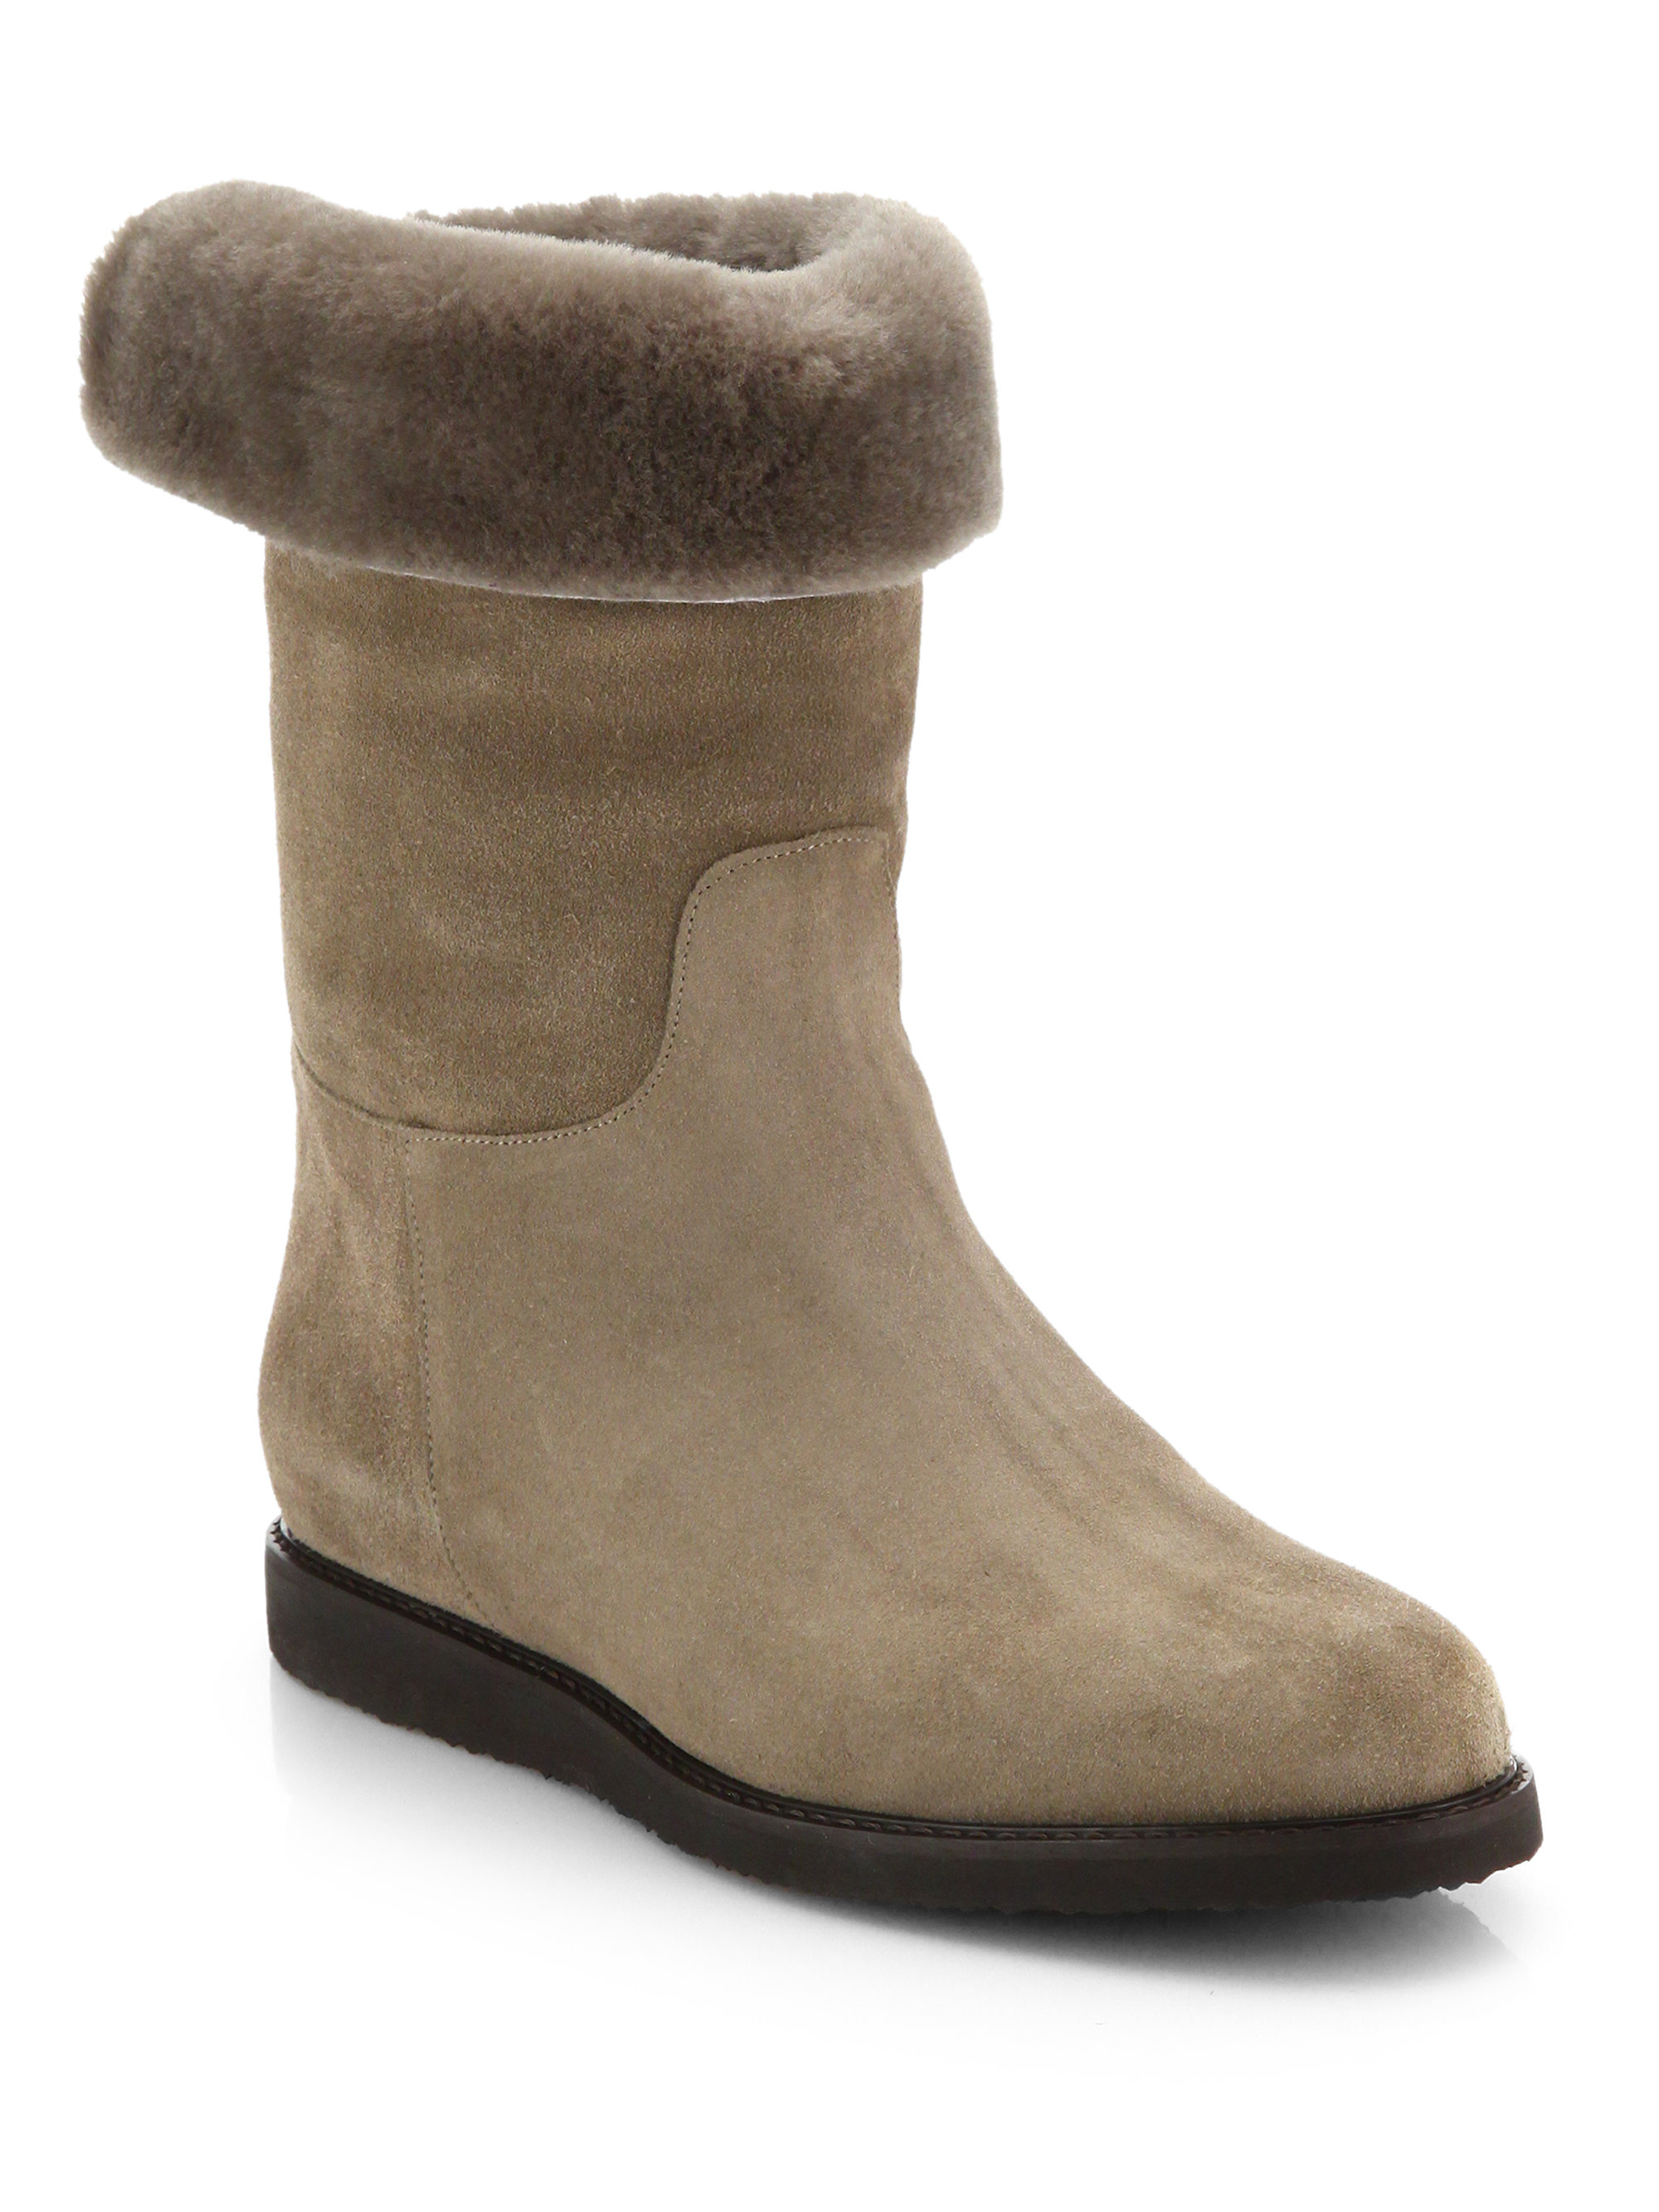 Lyst Ferragamo Suede Calf Hair Midcalf Boot In Natural